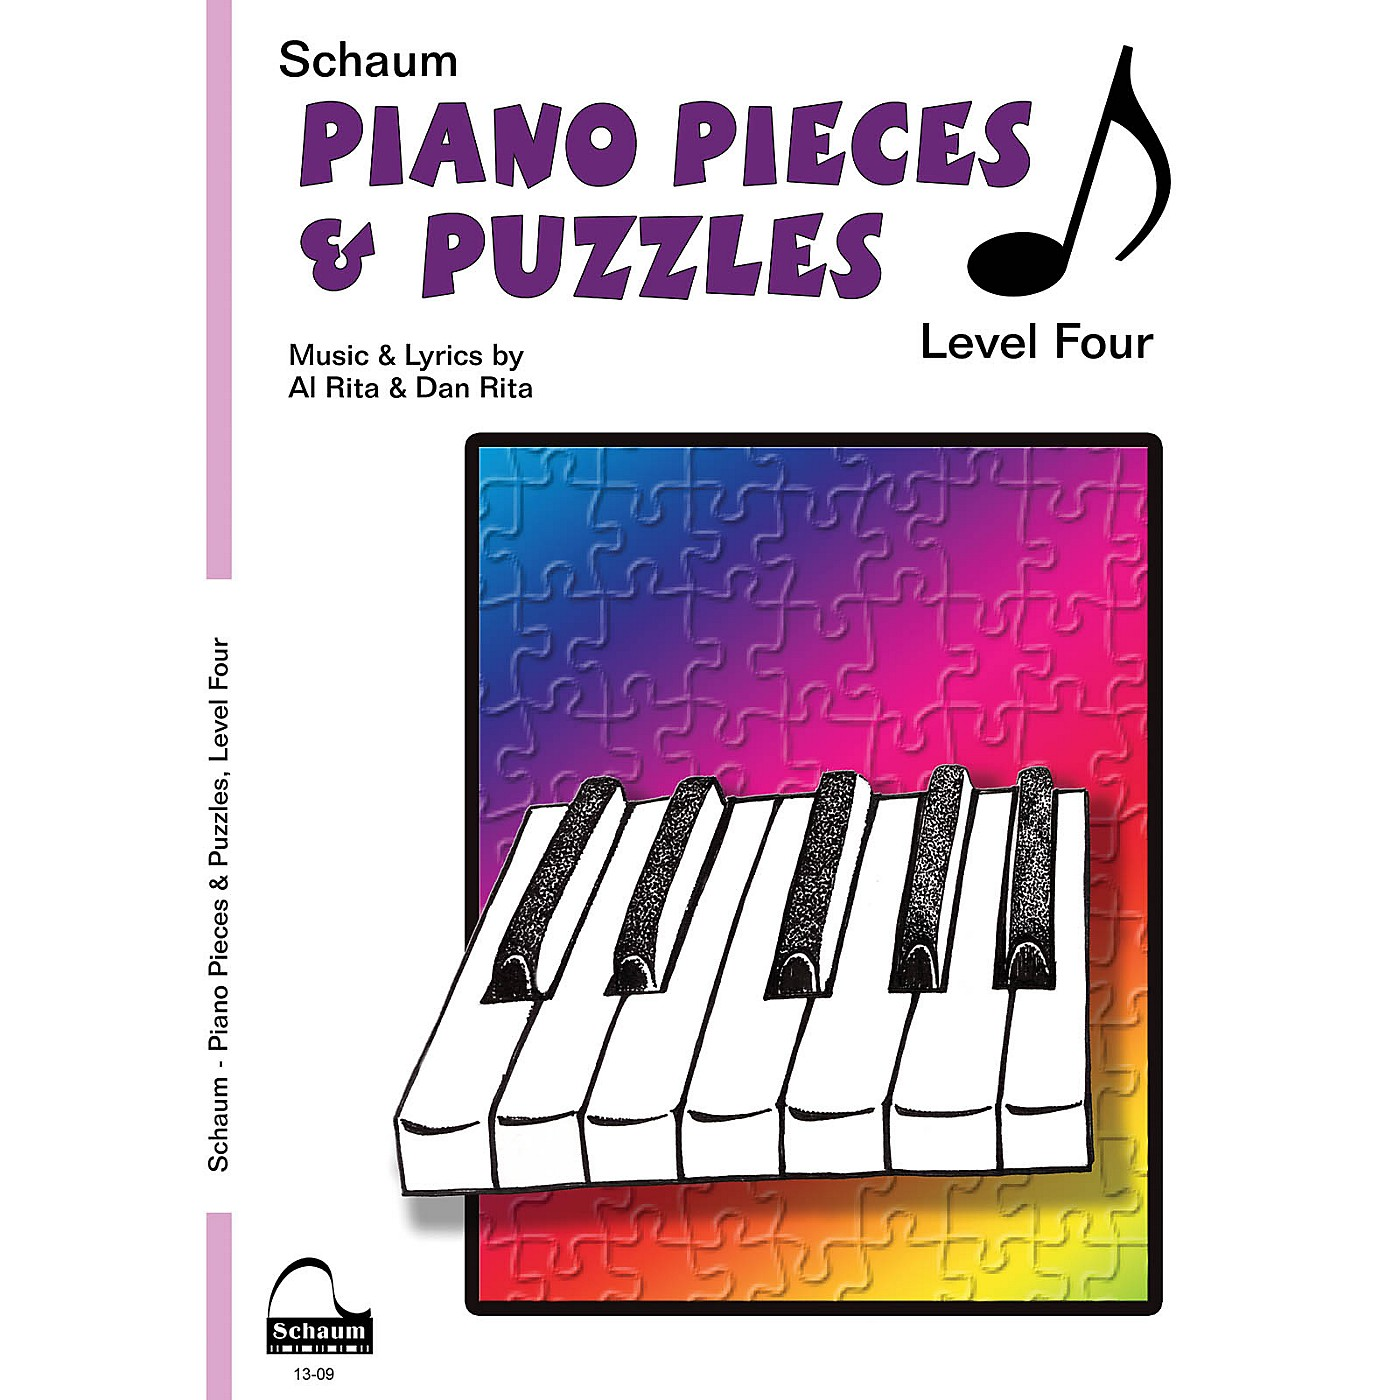 SCHAUM Piano Pieces & Puzzles (Level 4 Inter Level) Educational Piano Book by Al Rita thumbnail